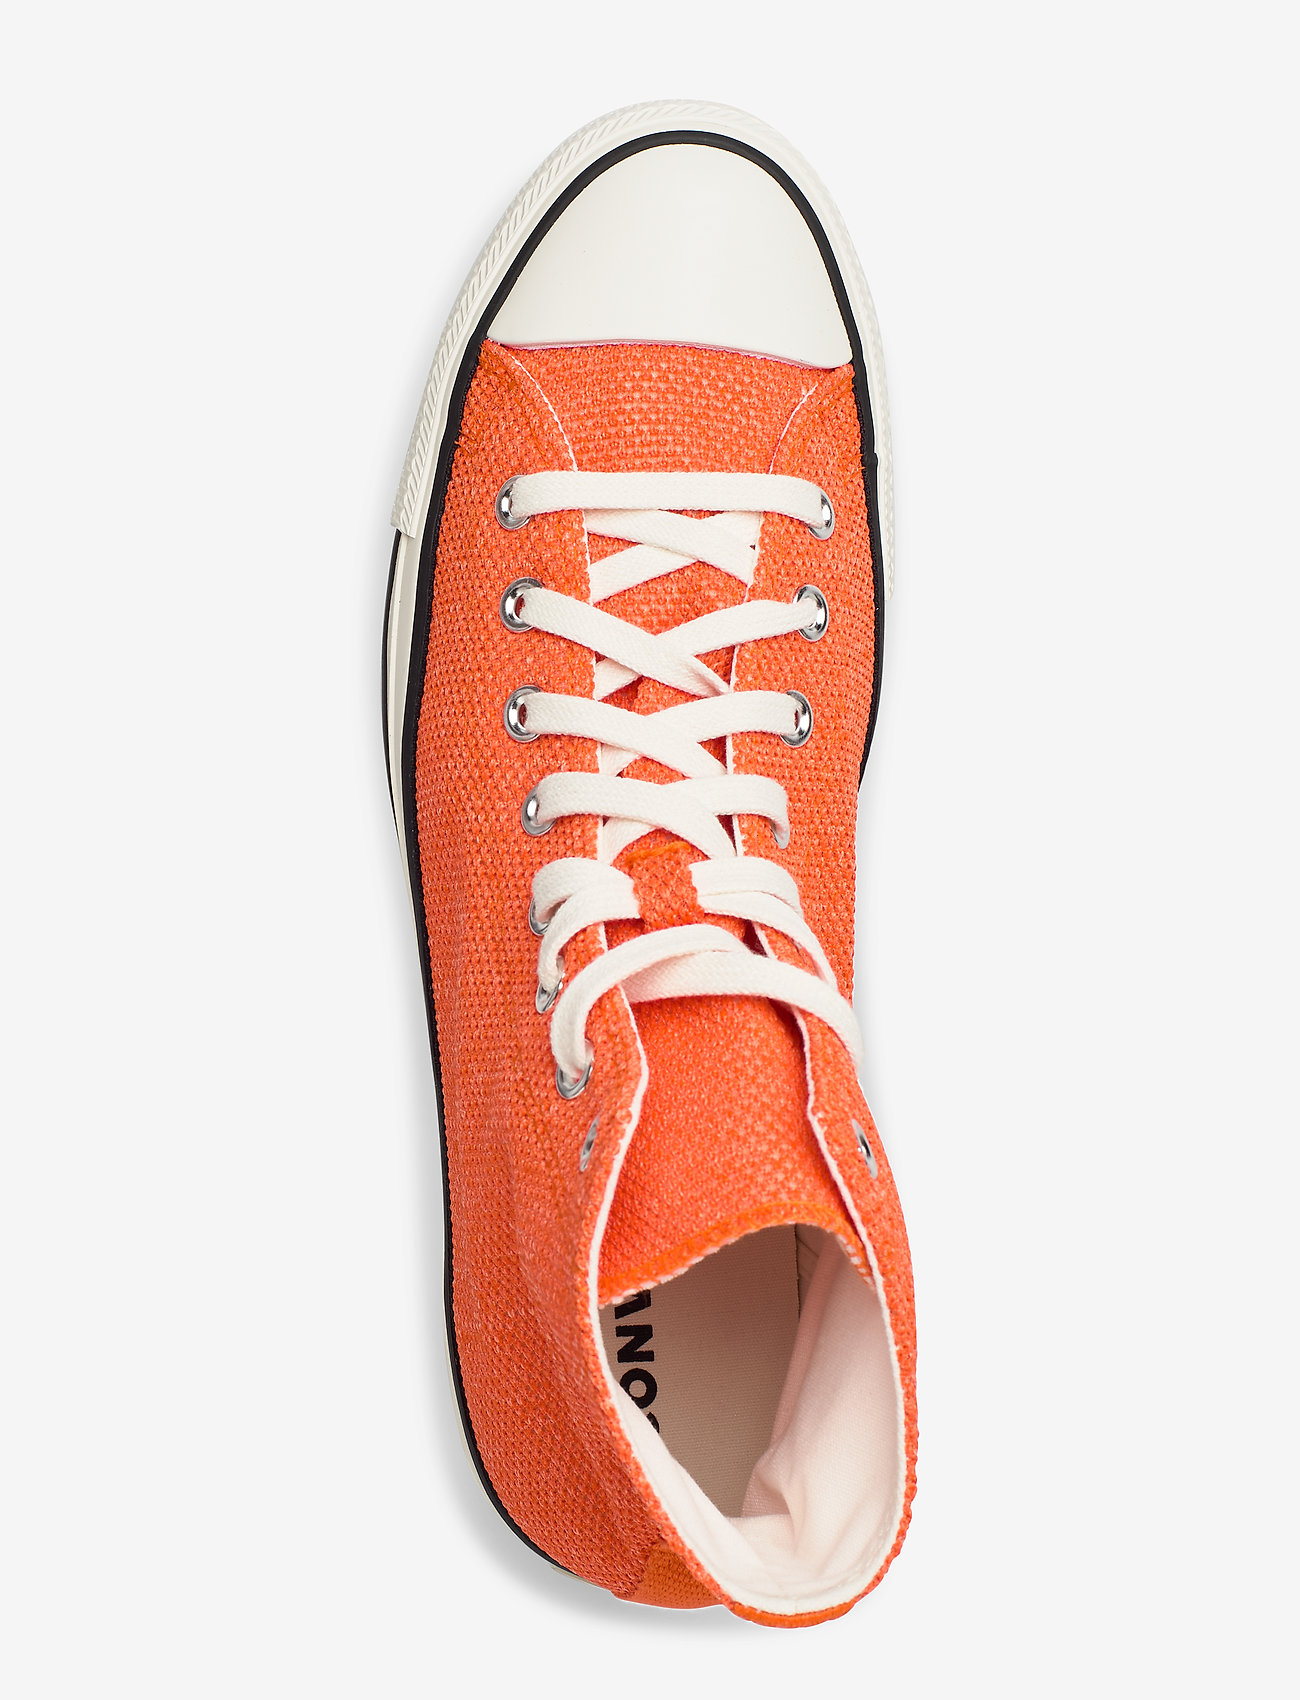 Converse Chuck Taylor All Star - Sneakers Orange